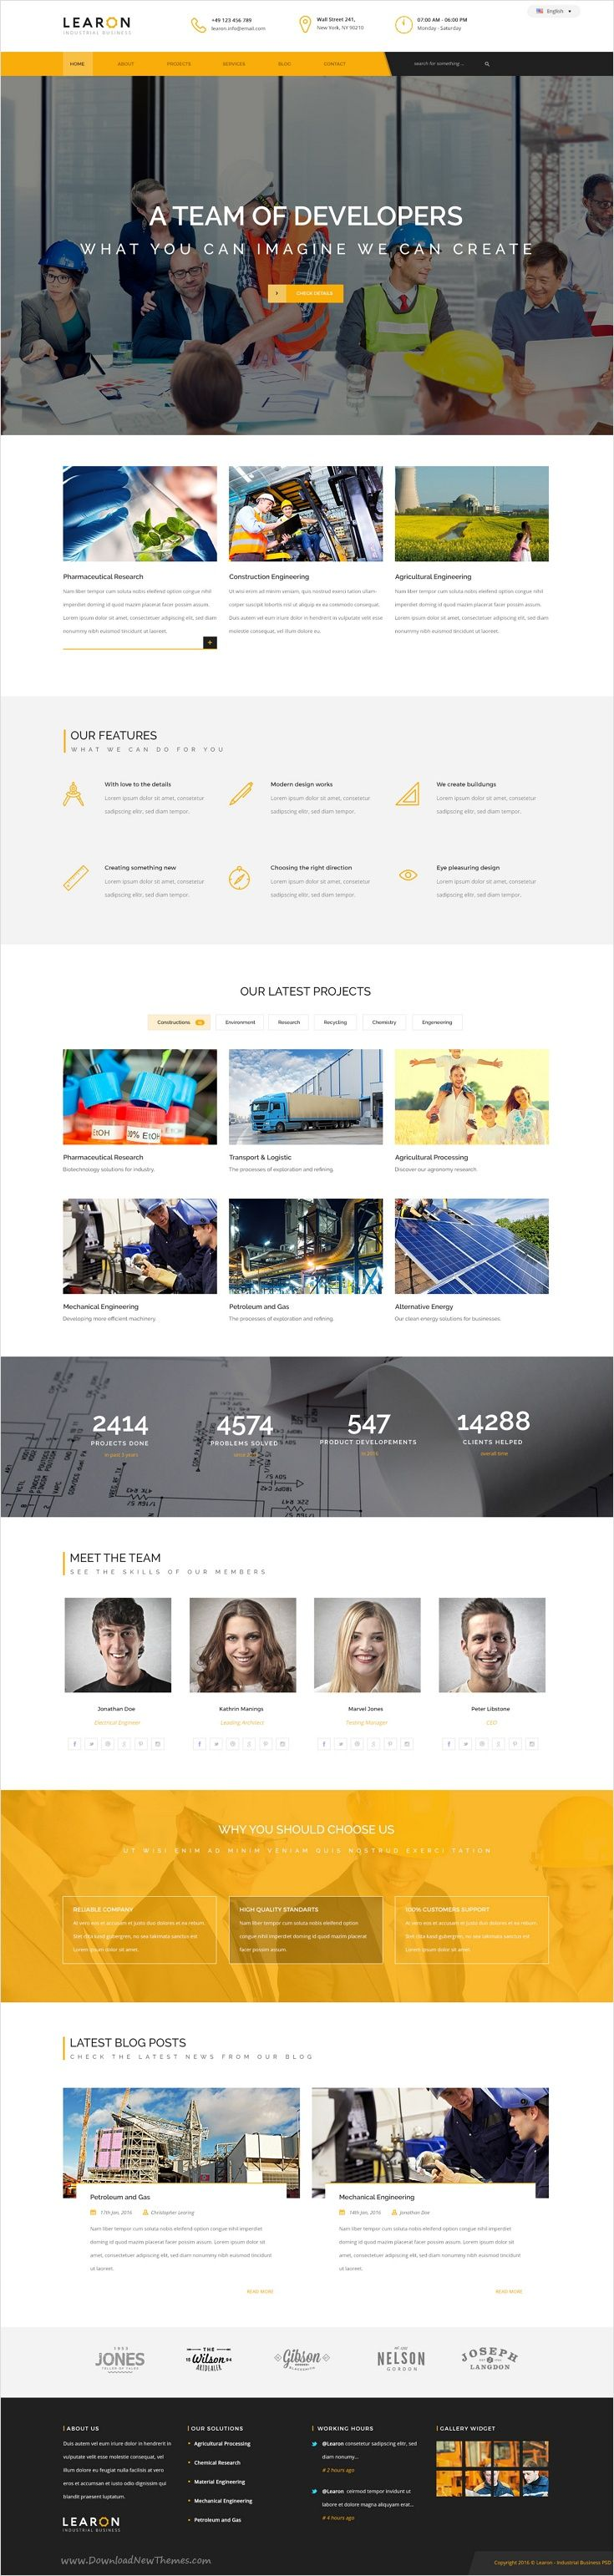 Learon is beautifully design perfect PSD #template for #construction #company, industrial companies, mechanical, engineering, chemical industry with 3 unique homepage layouts and 11 organized PSD files website download now➩ https://themeforest.net/item/learon-industrial-business-psd-template/17243158?ref=Datasata